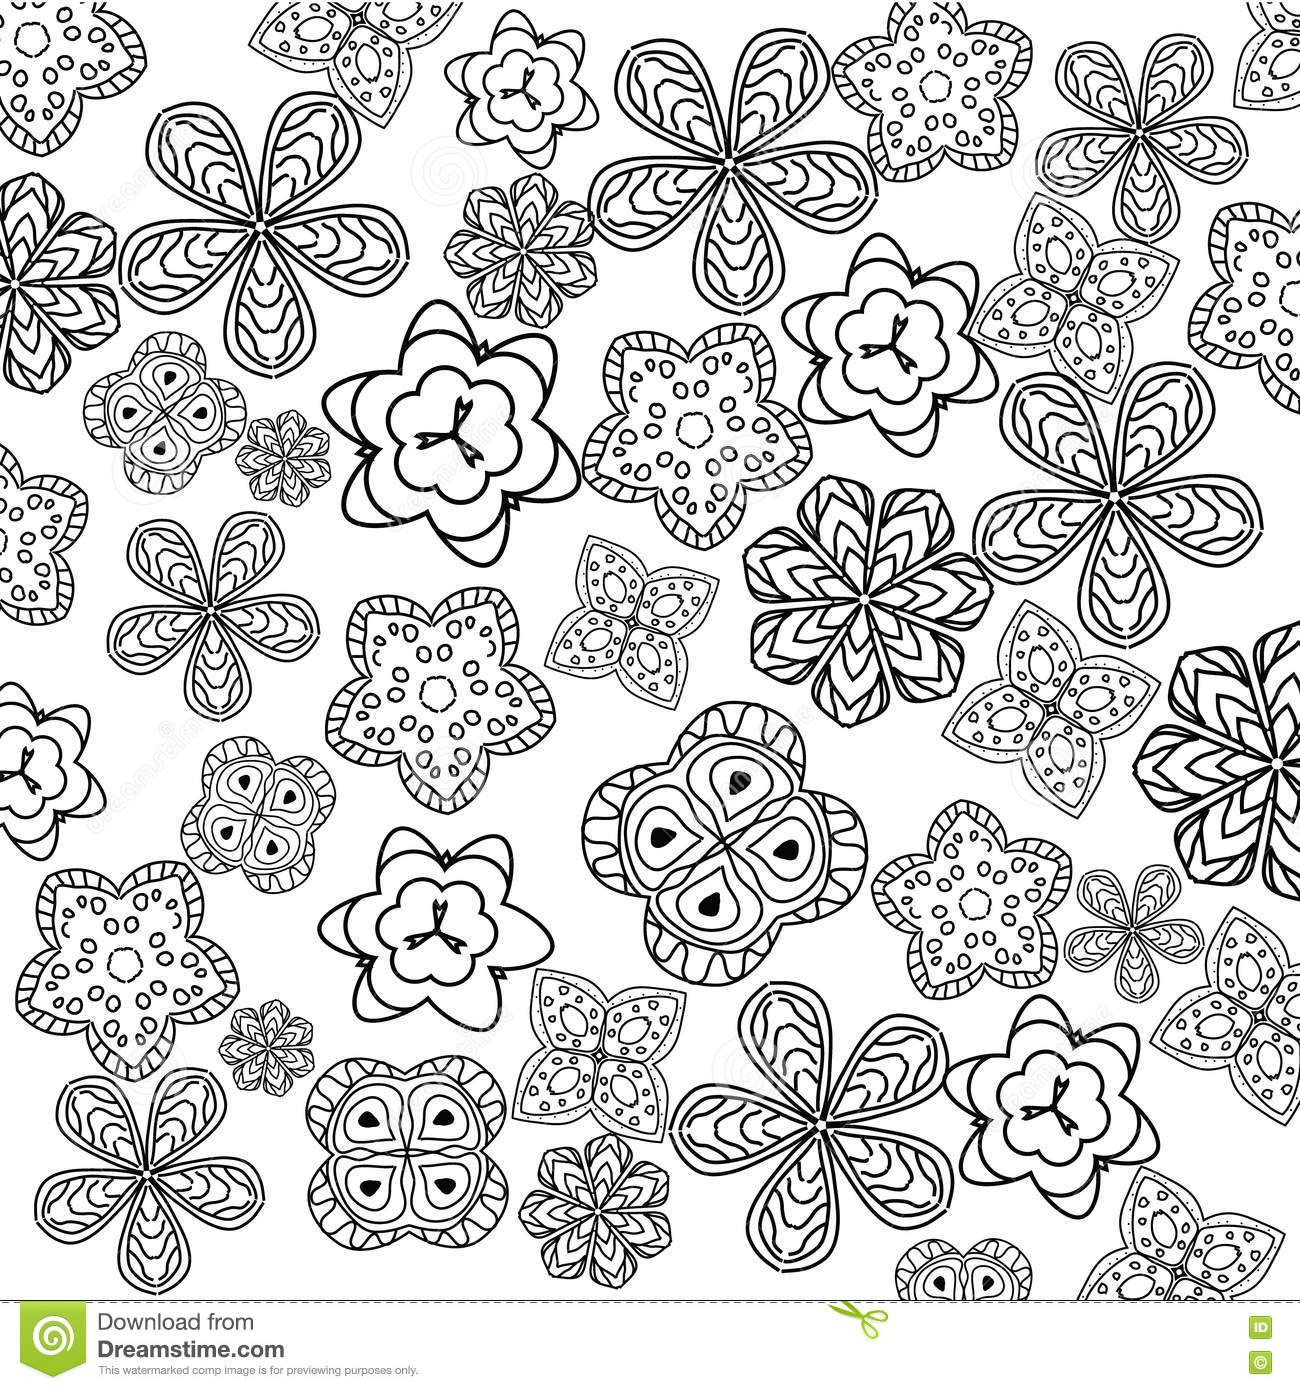 relaxing coloring page with flowers for kids and adults art